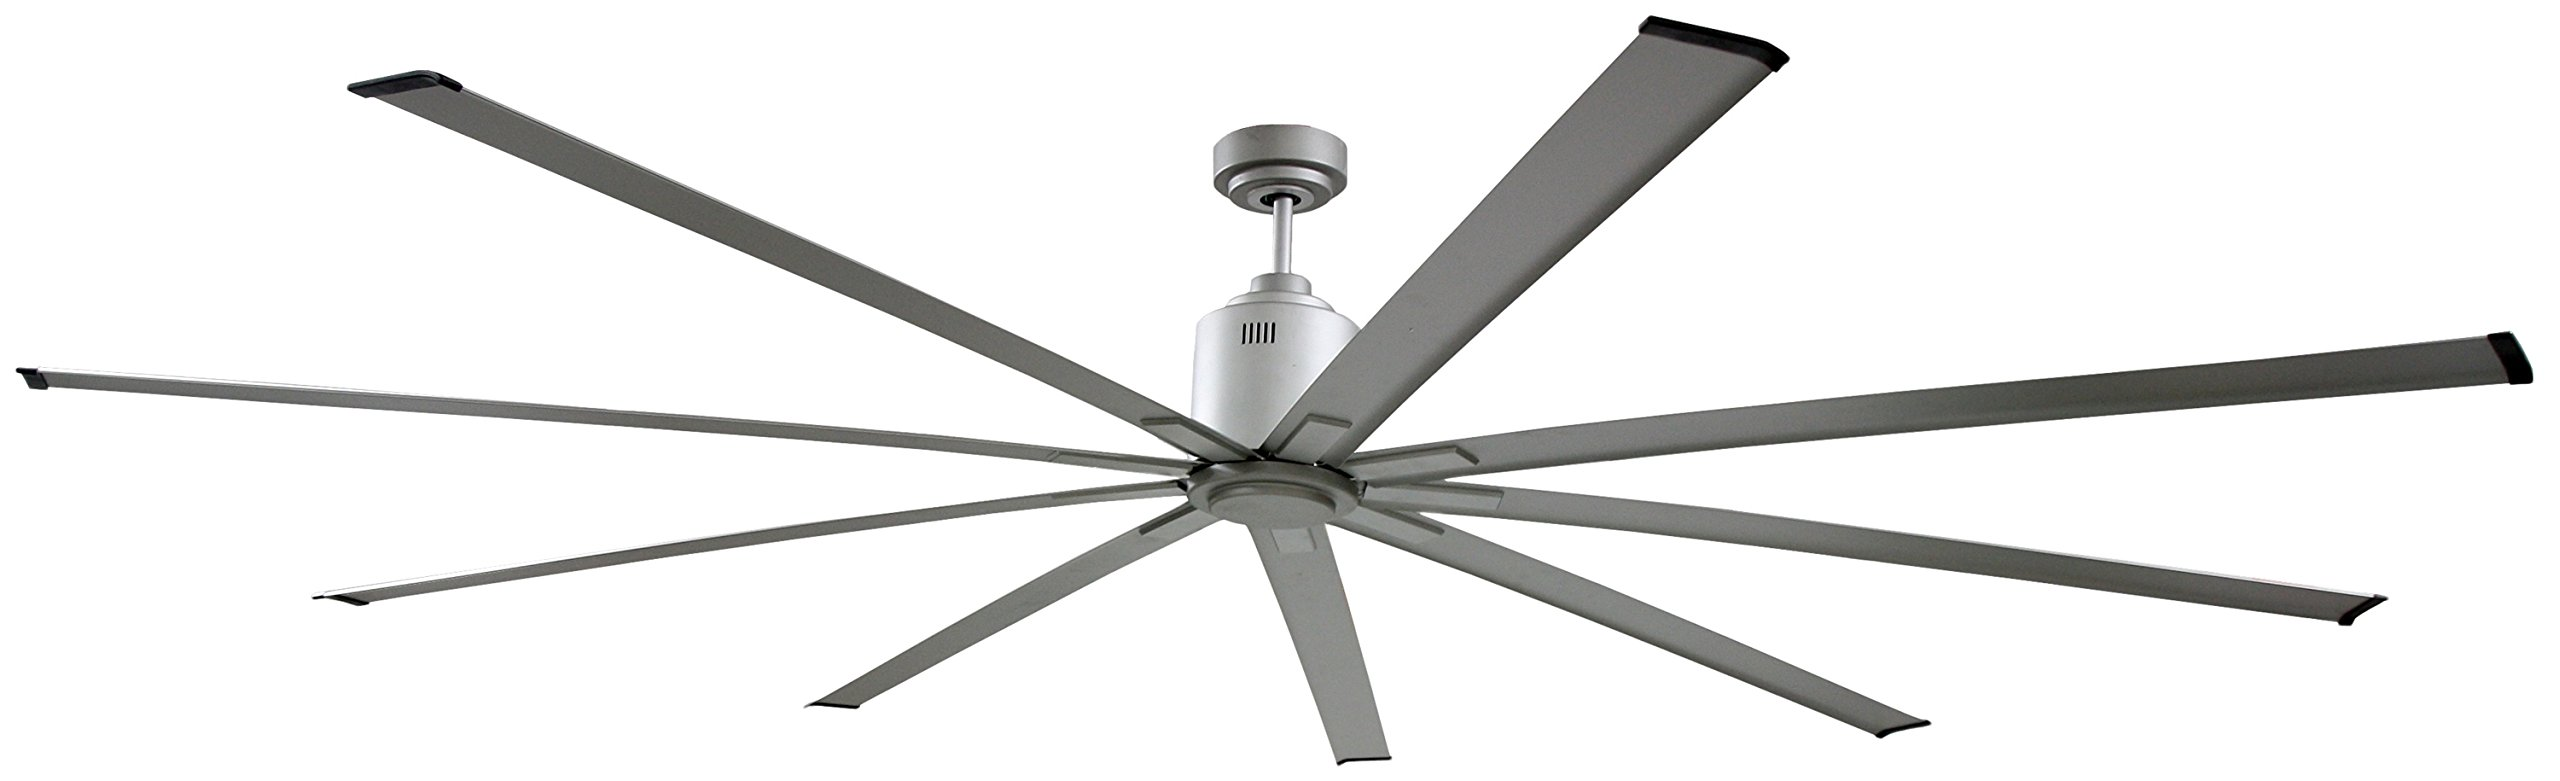 Big Air 96 Inch Industrial Ceiling Fan | Indoor/Outdoor | 6 Speed w/Remote, 14000 CFM, Reversible | | For Commercial or Residential Use (Brushed Nickel)